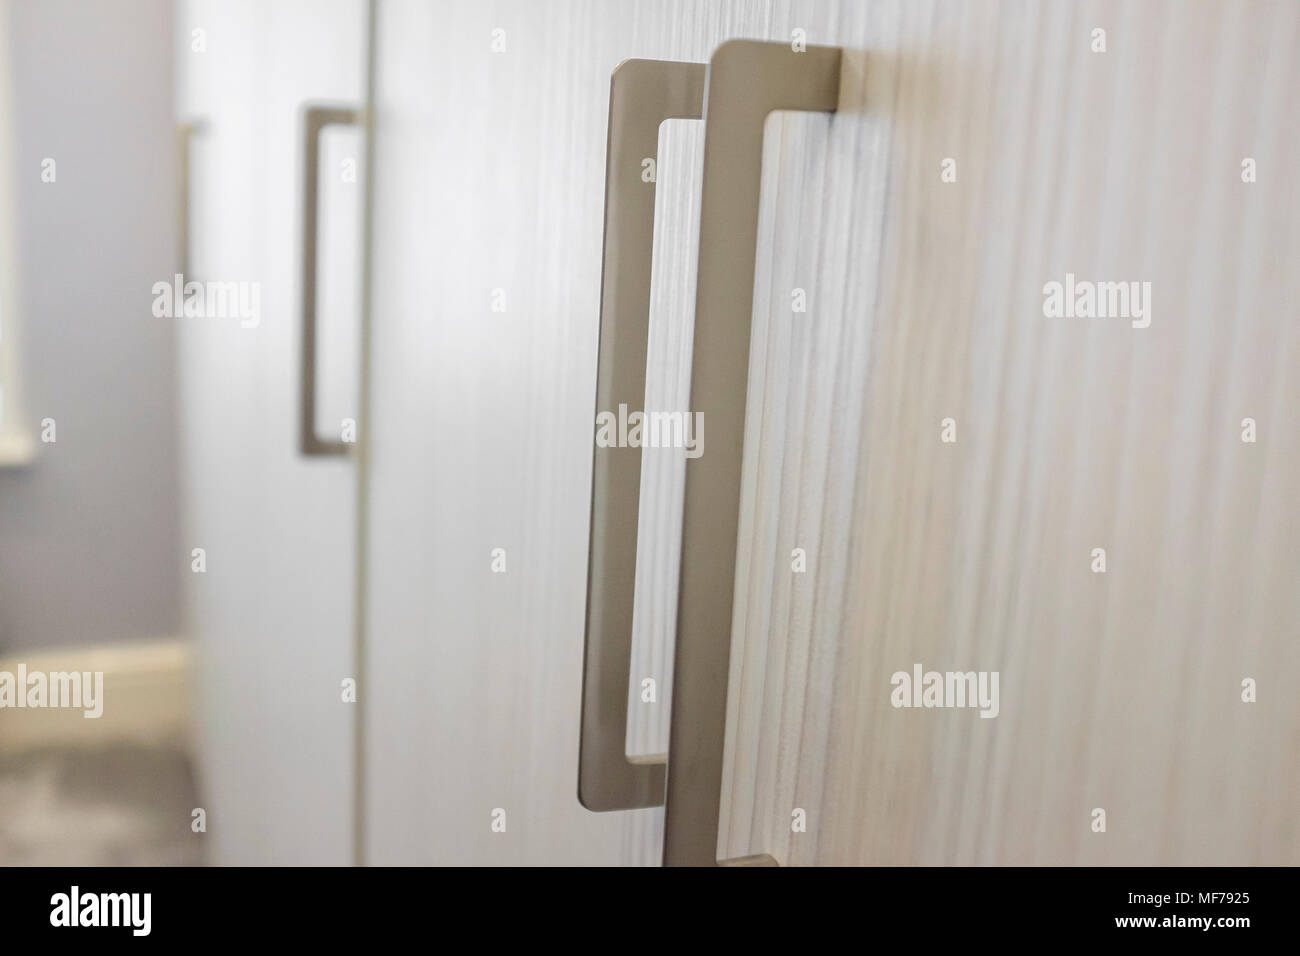 Silver handles on a modern fitted wardrobe. - Stock Image